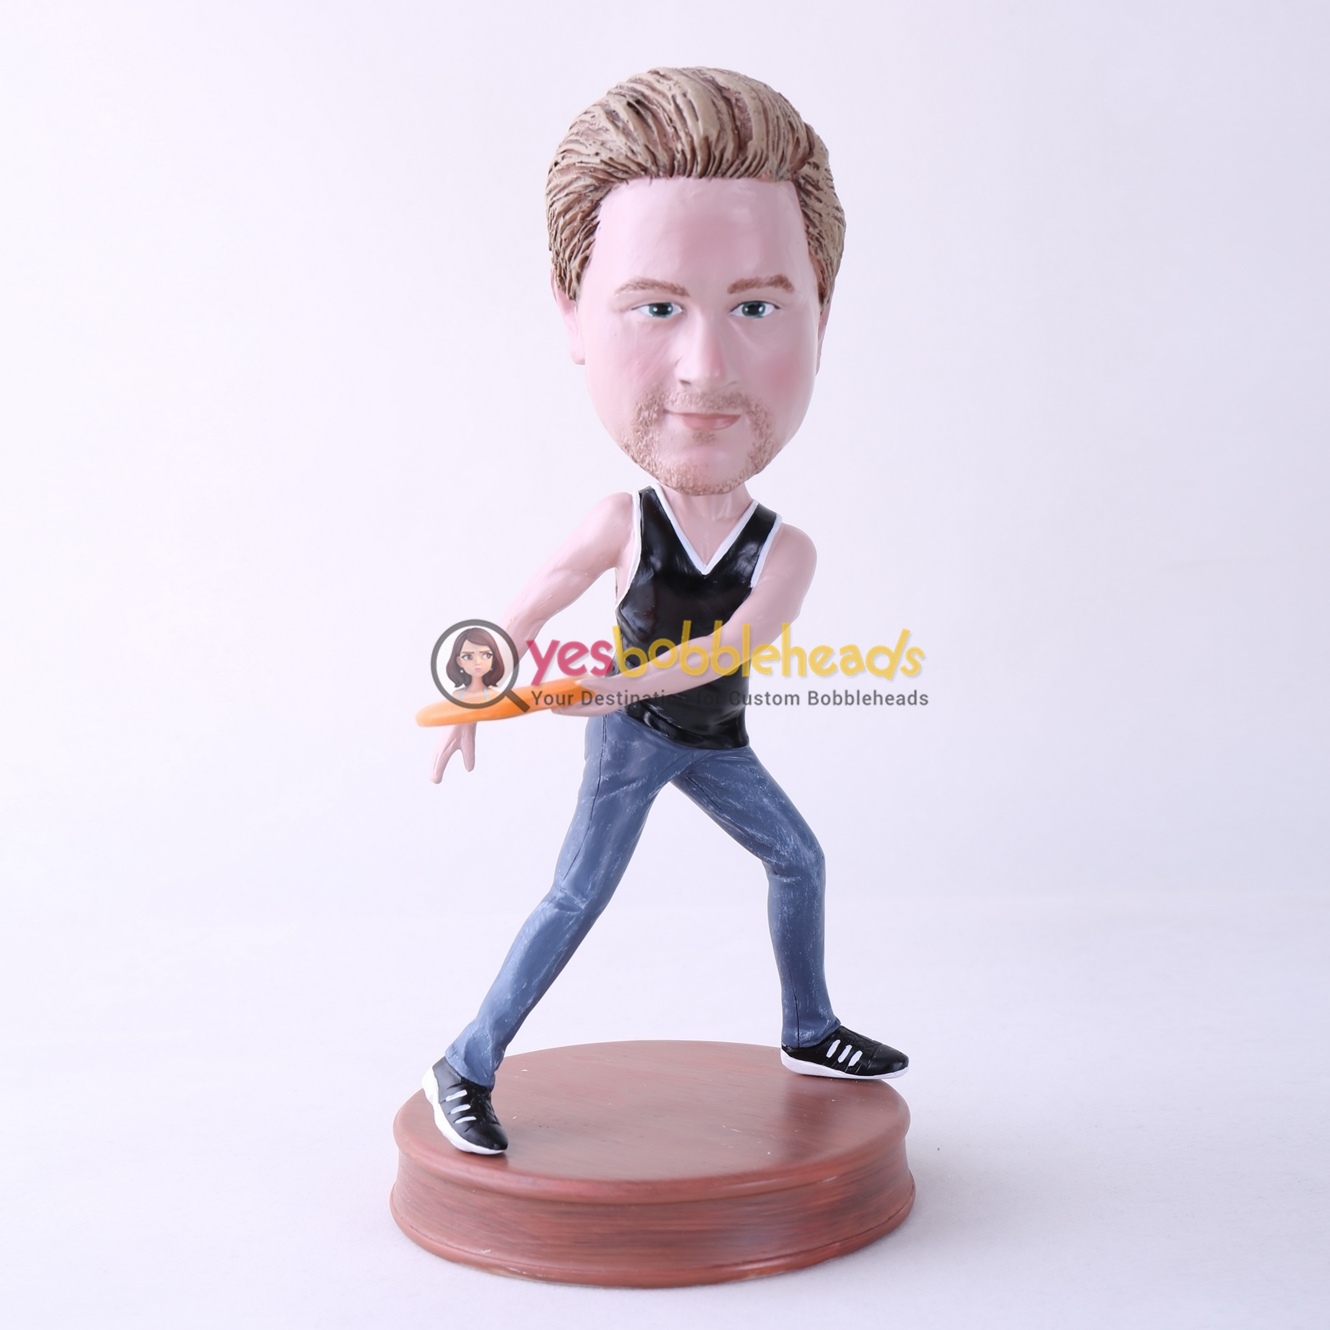 Picture of Custom Bobblehead Doll: Frisbee Player